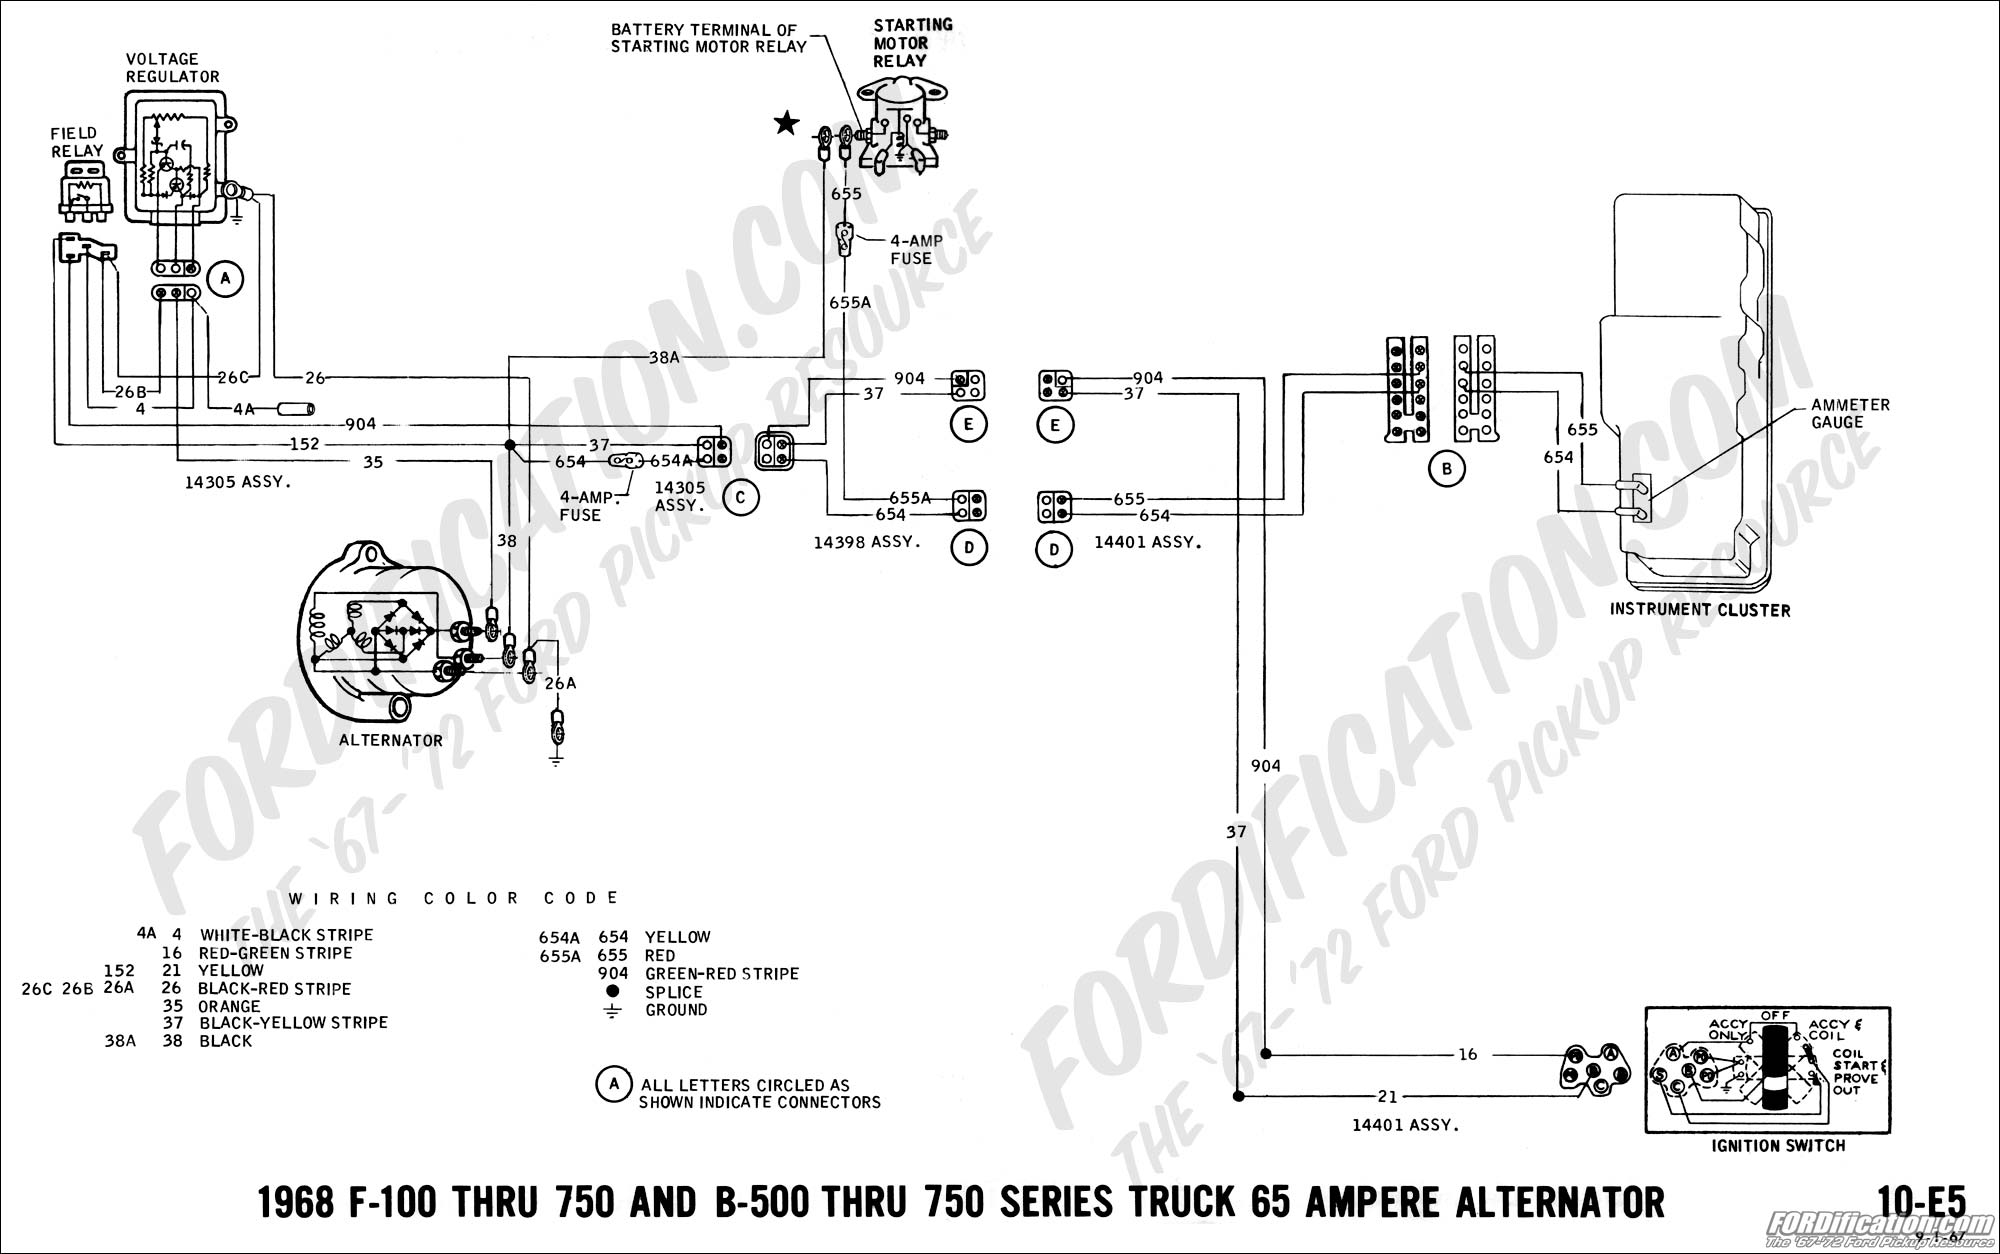 68 07 ford truck technical drawings and schematics section h wiring 1990 ford alternator wiring diagram at creativeand.co